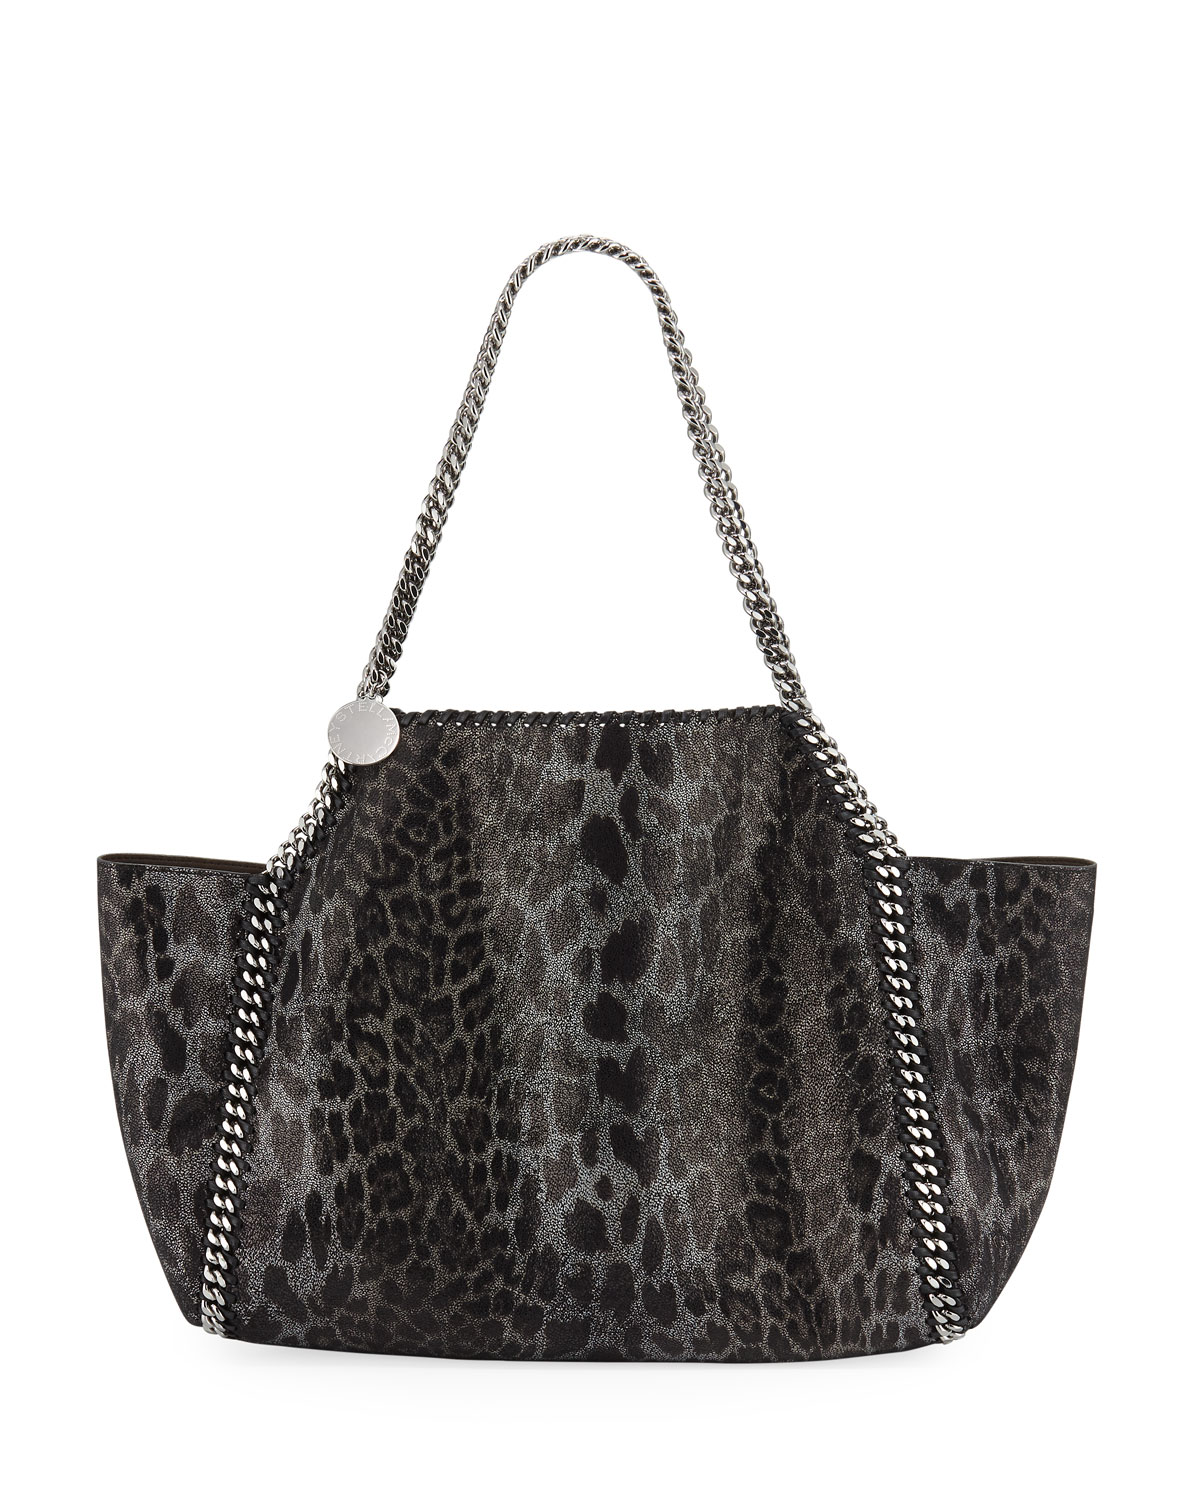 cddfc2e981e0 Stella McCartney Falabella Small Metallic Leopard Reversible Tote Bag